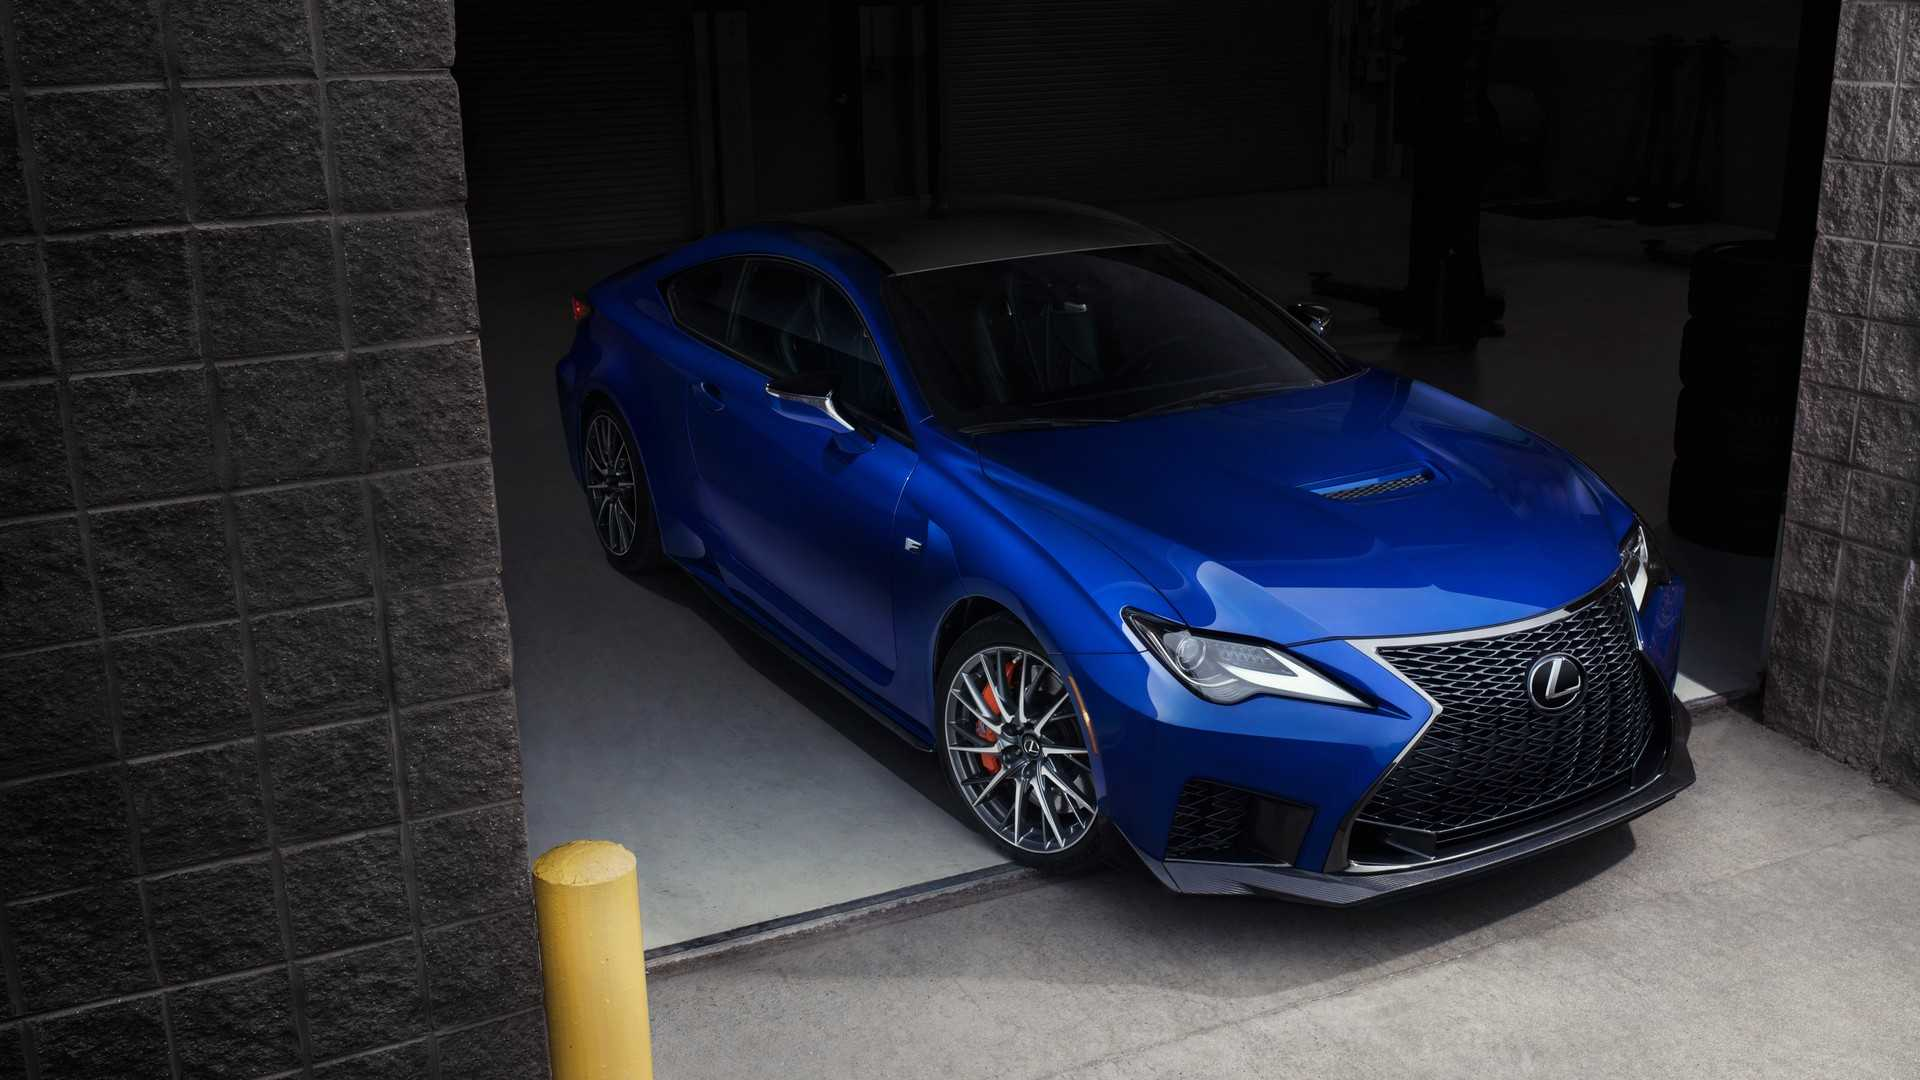 82 Great Rcf Lexus 2020 Pricing with Rcf Lexus 2020